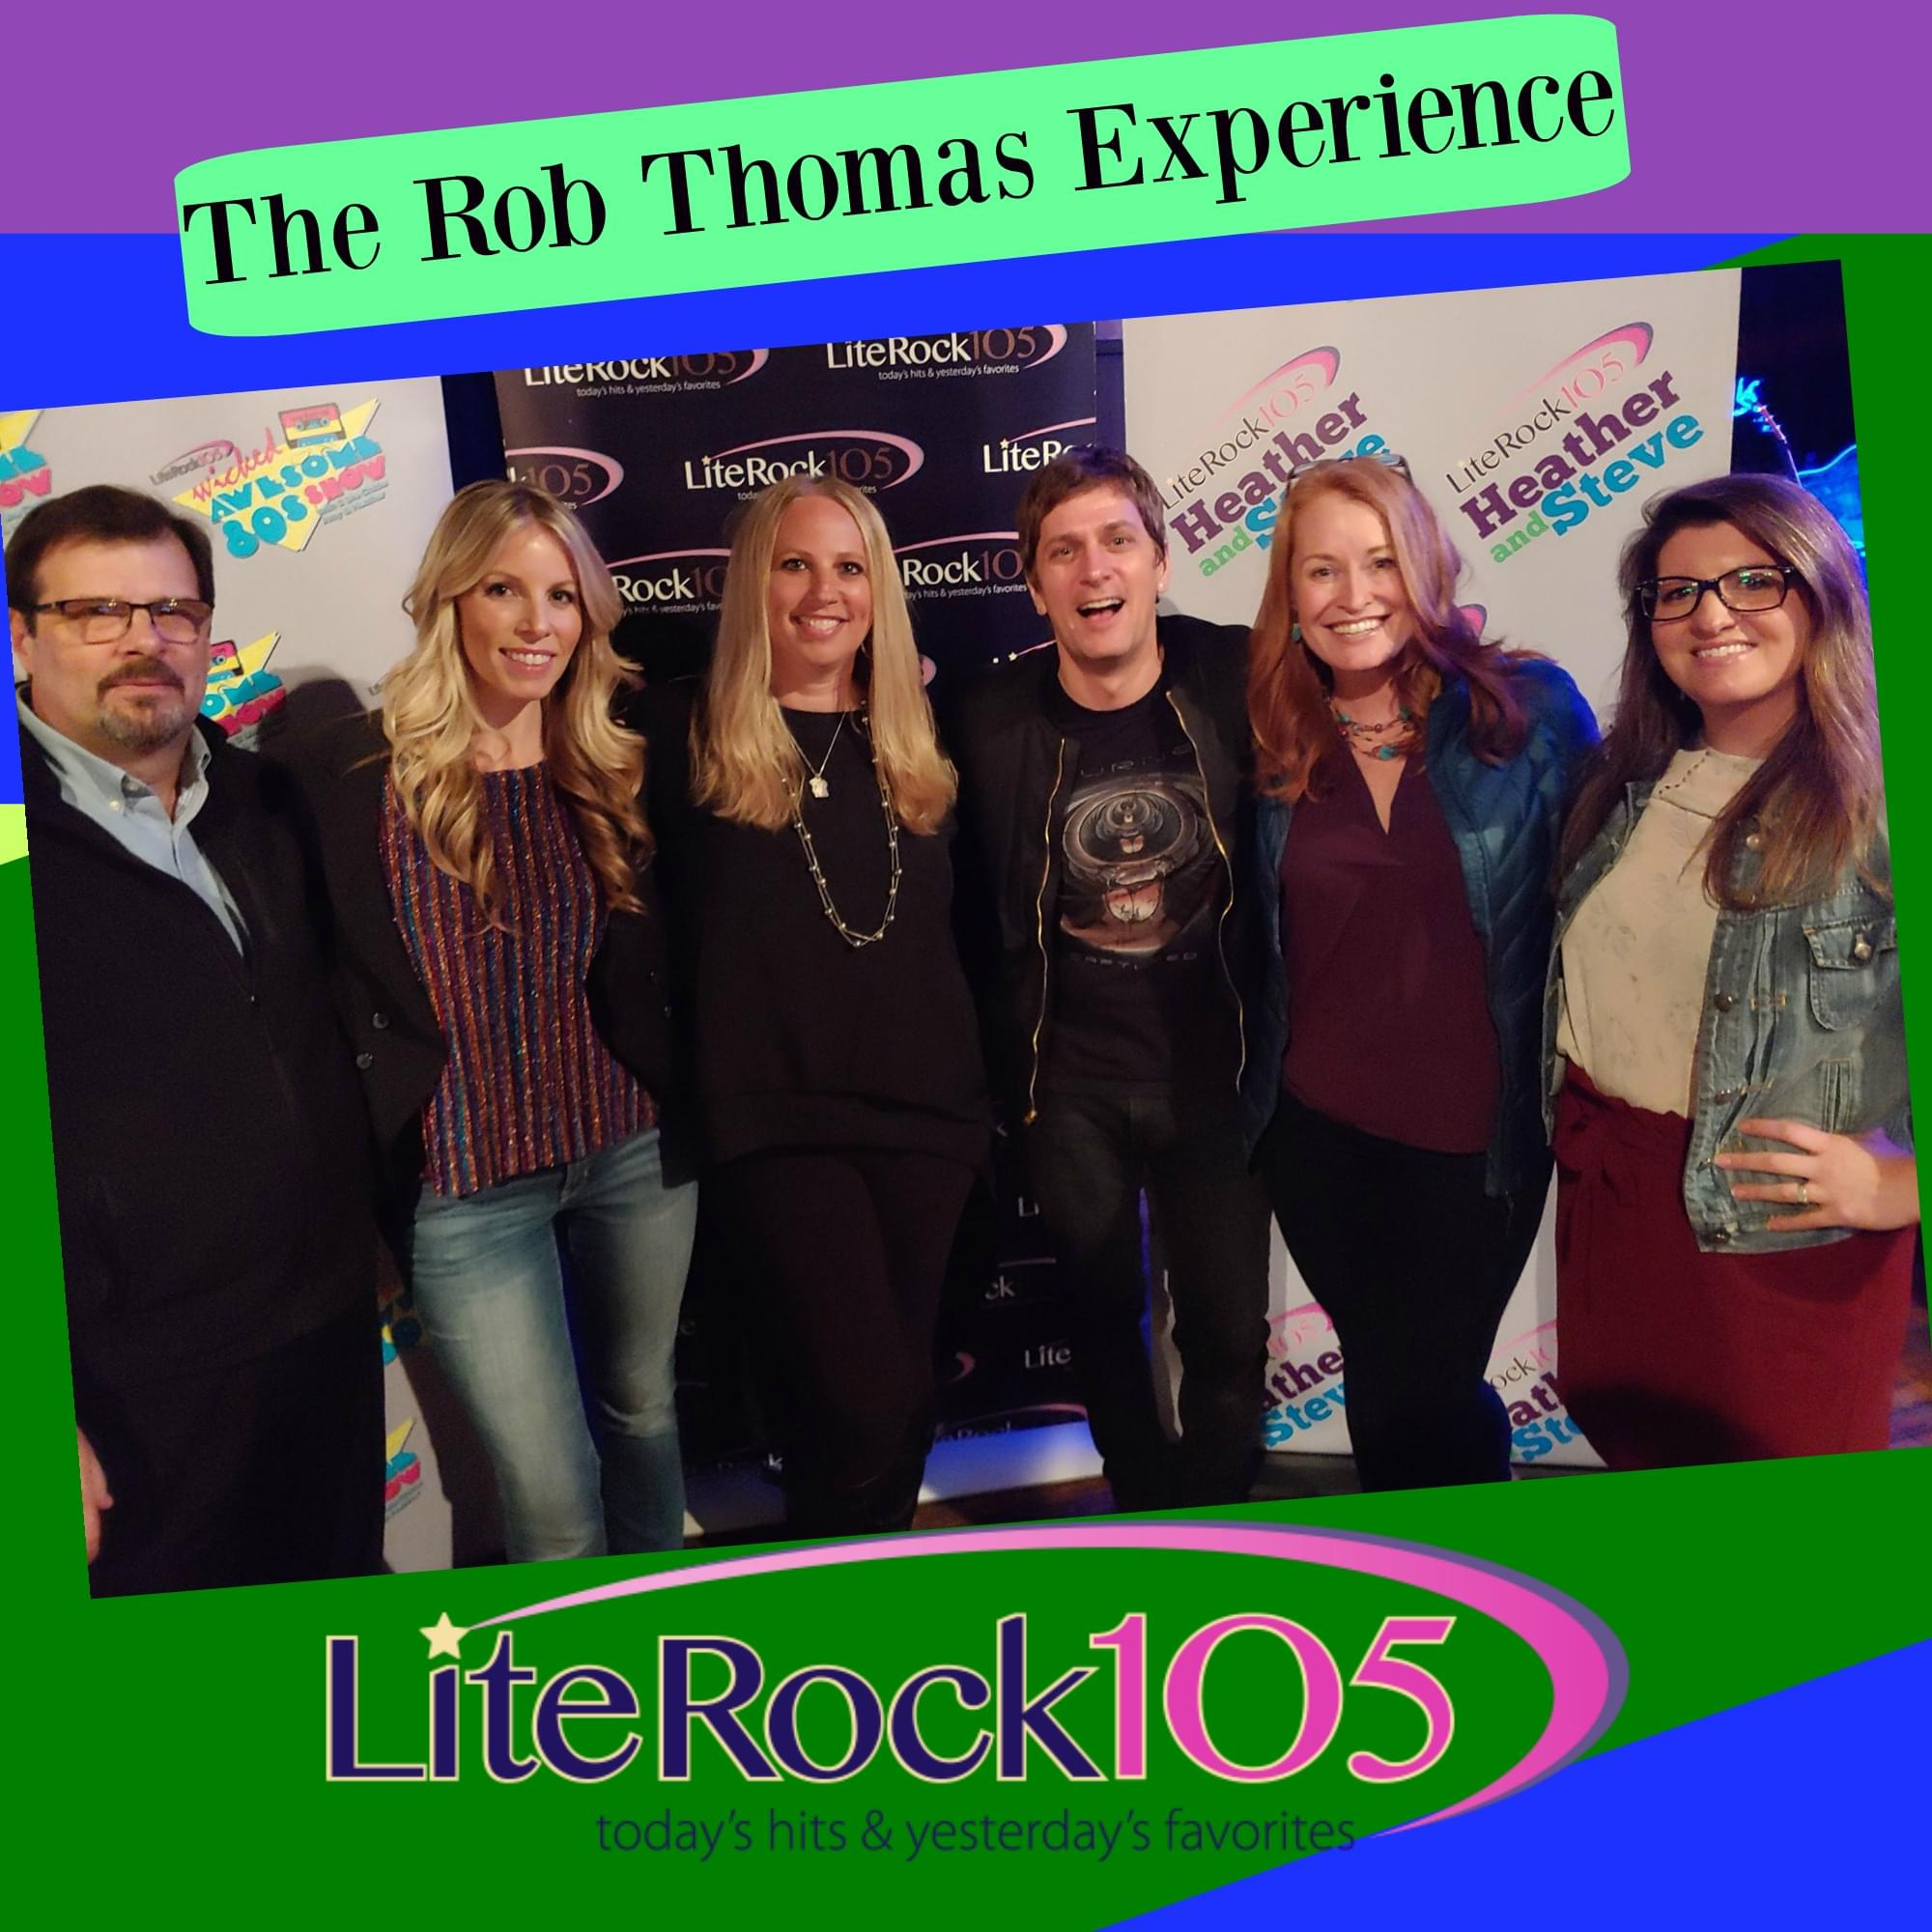 WATCH >> Pics and Video from Lite Rock 105's Rob Thomas Experience